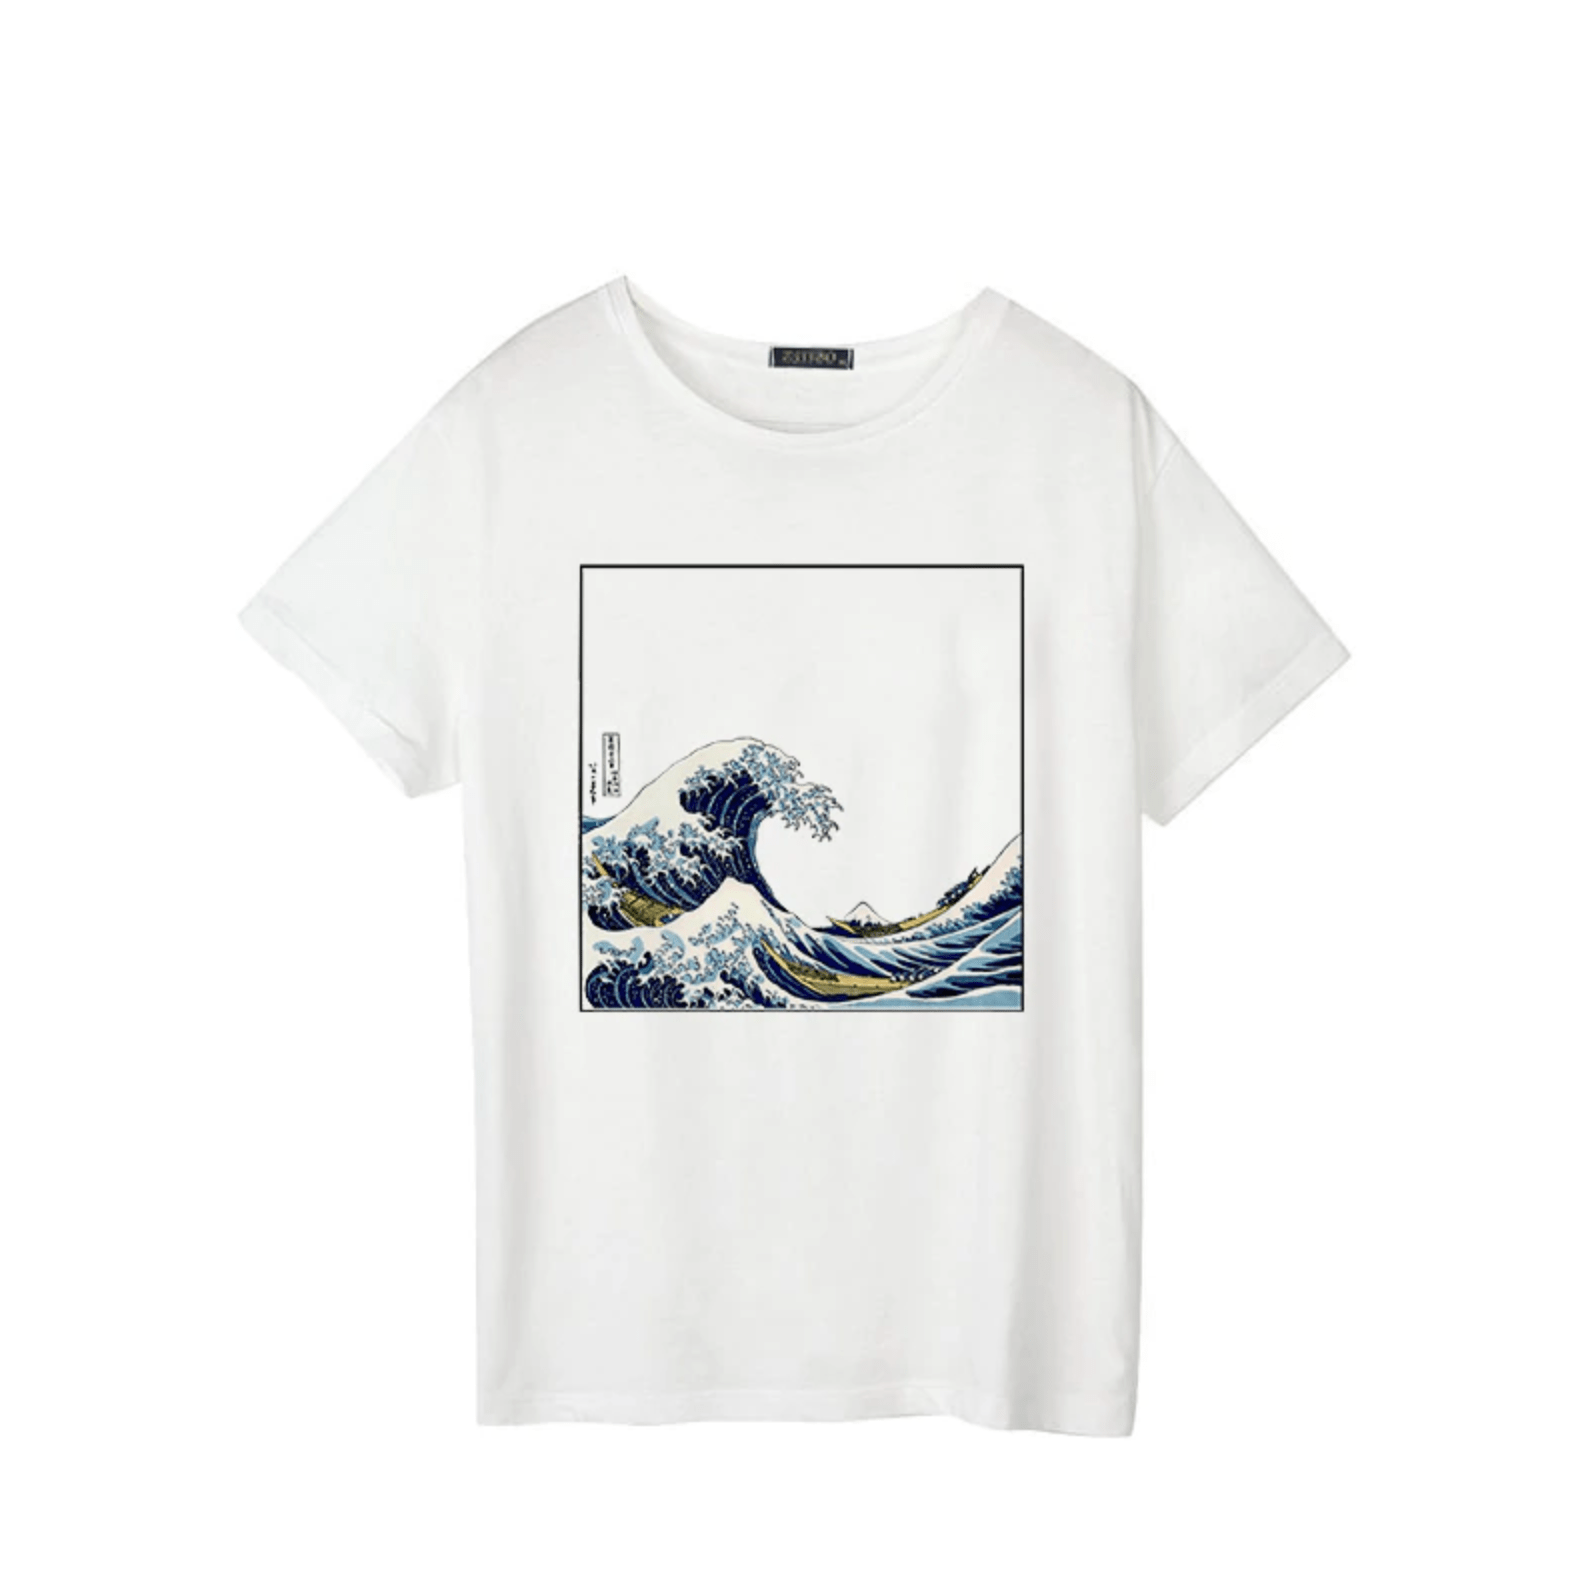 Aesthetic waves t.